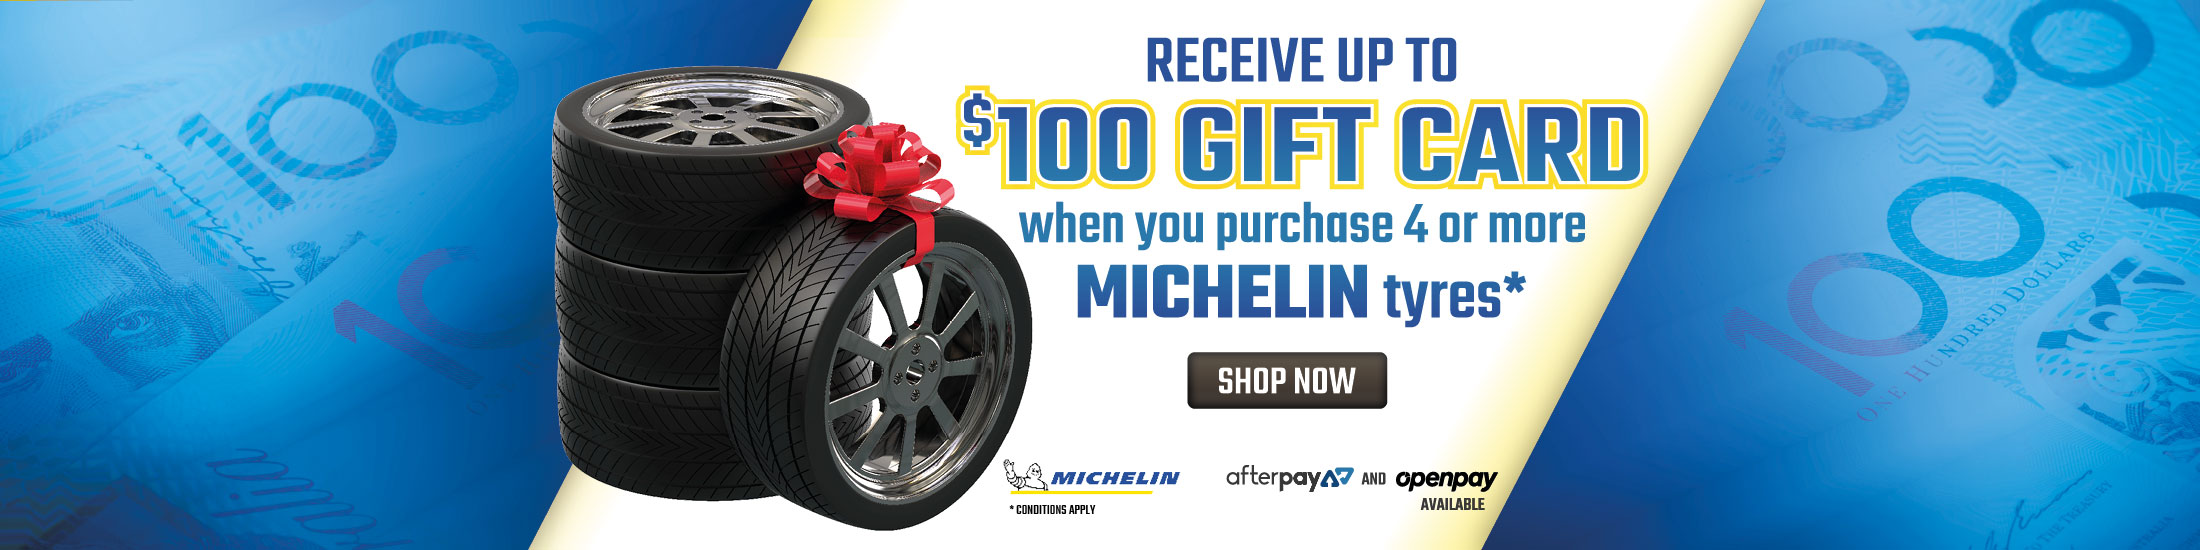 Michelin Gift Card Promo